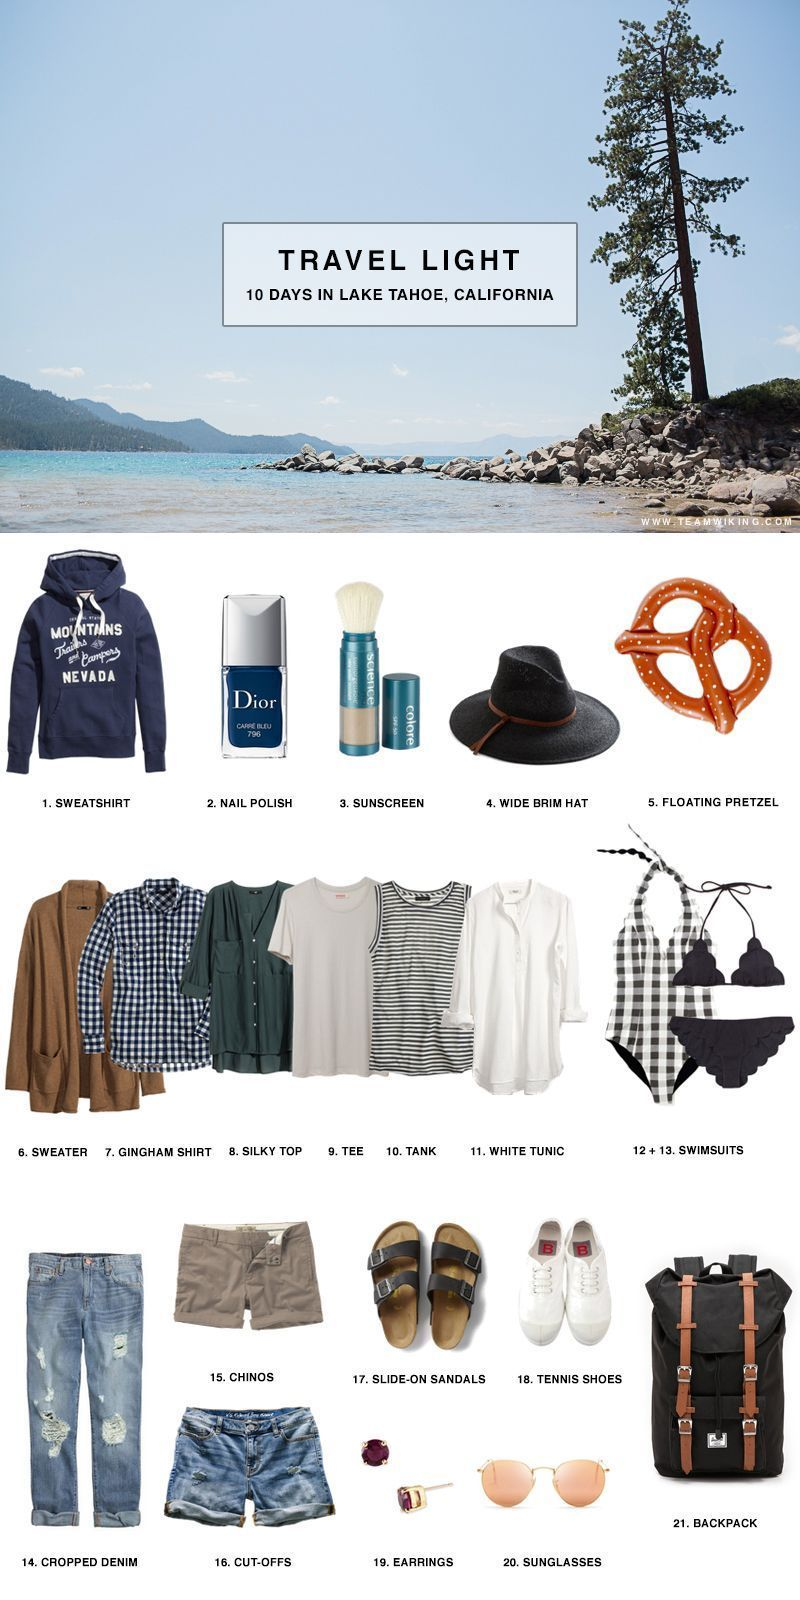 12 lake Tahoe summer vacation outfits + packing list to keep you organized - sum... -  12 lake Tahoe summer vacation outfits + packing list to keep you organized – summervacationsin… - #amazingtraveldestinations #Lake #List #organized #outfits #packing #sum #summer #tahoe #traintravelquotes #travelairport #travelbucketlist #traveldestinationsaffordable #traveldestinationsbucketlists #traveldestinationseuropean #traveldestinationsforcouples #traveldestinationsusa #travelideas #travelpacking #tra